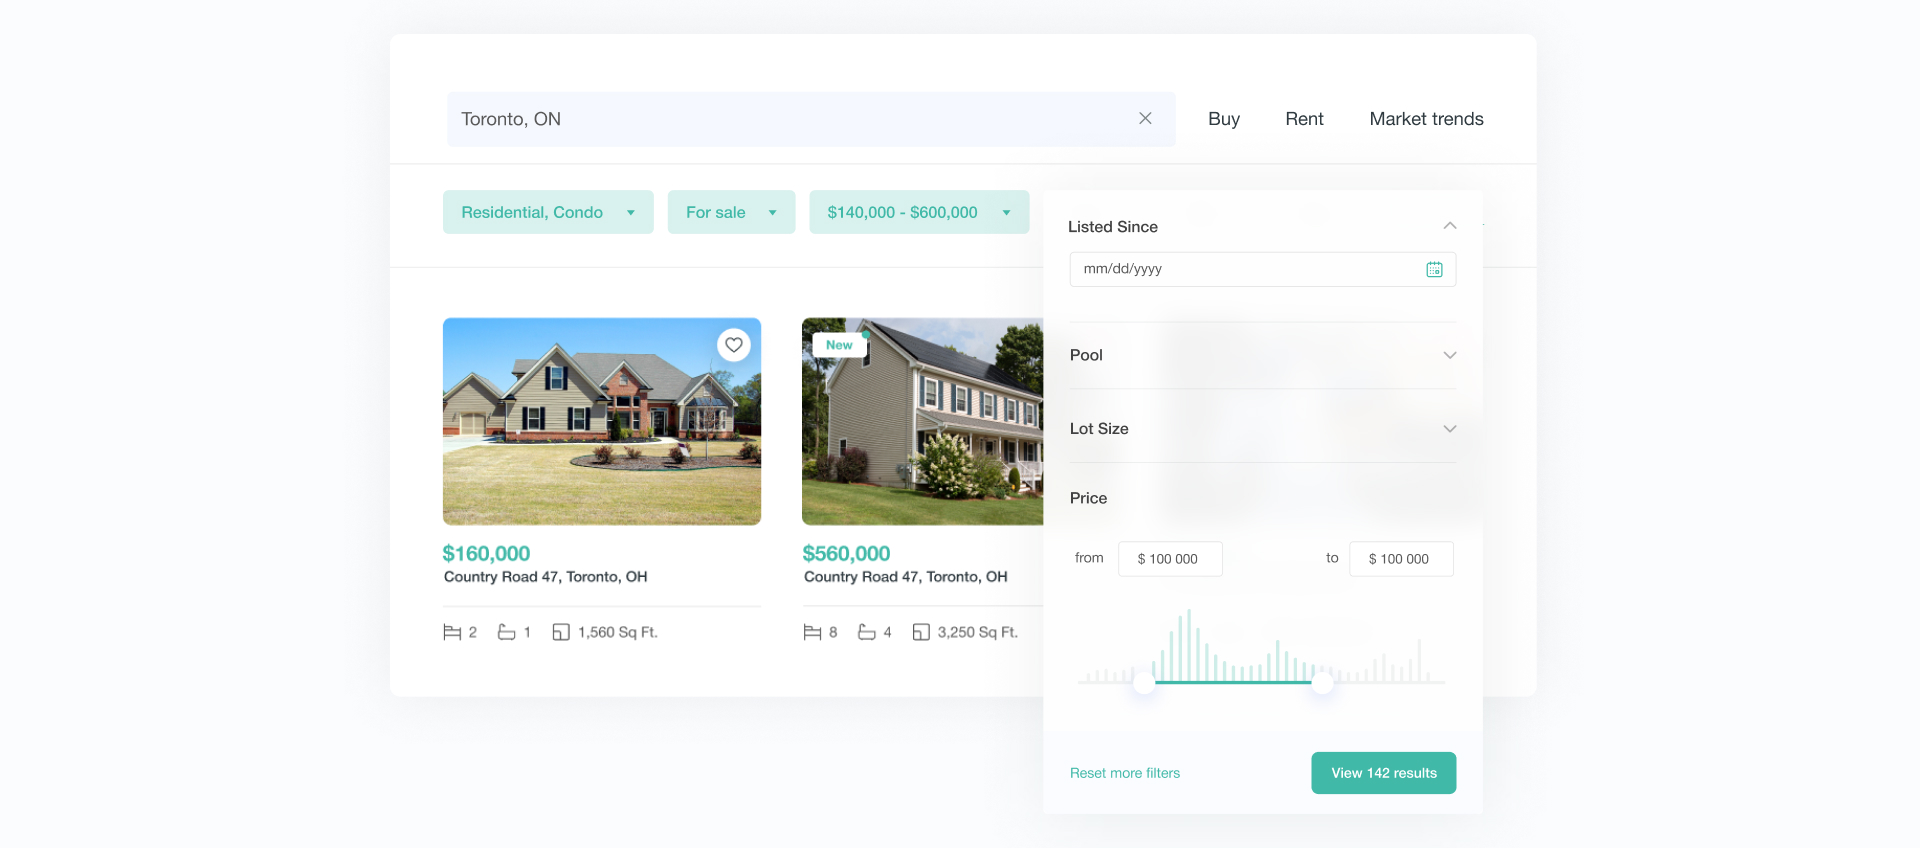 Marketplace search page